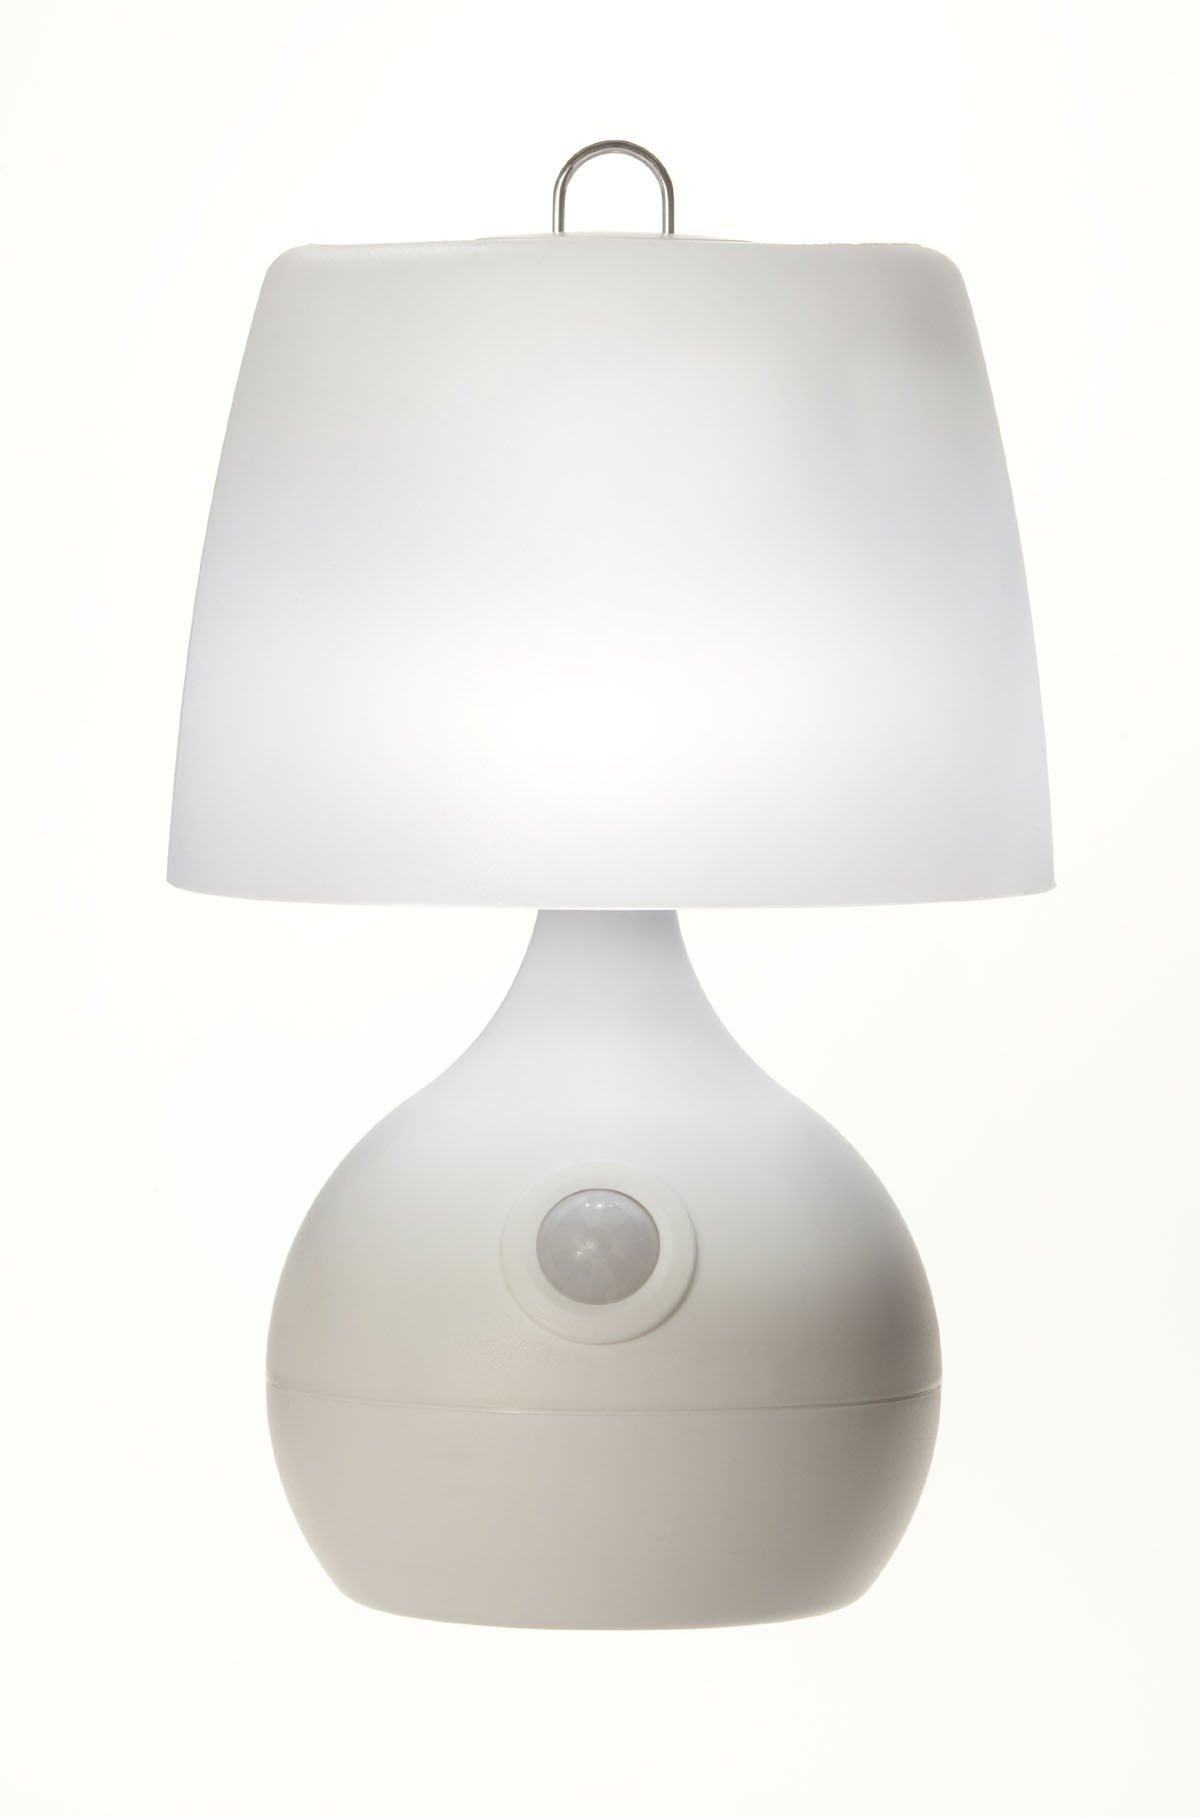 Fulcrum 8 LED Sensor Cordless Table Lamp image